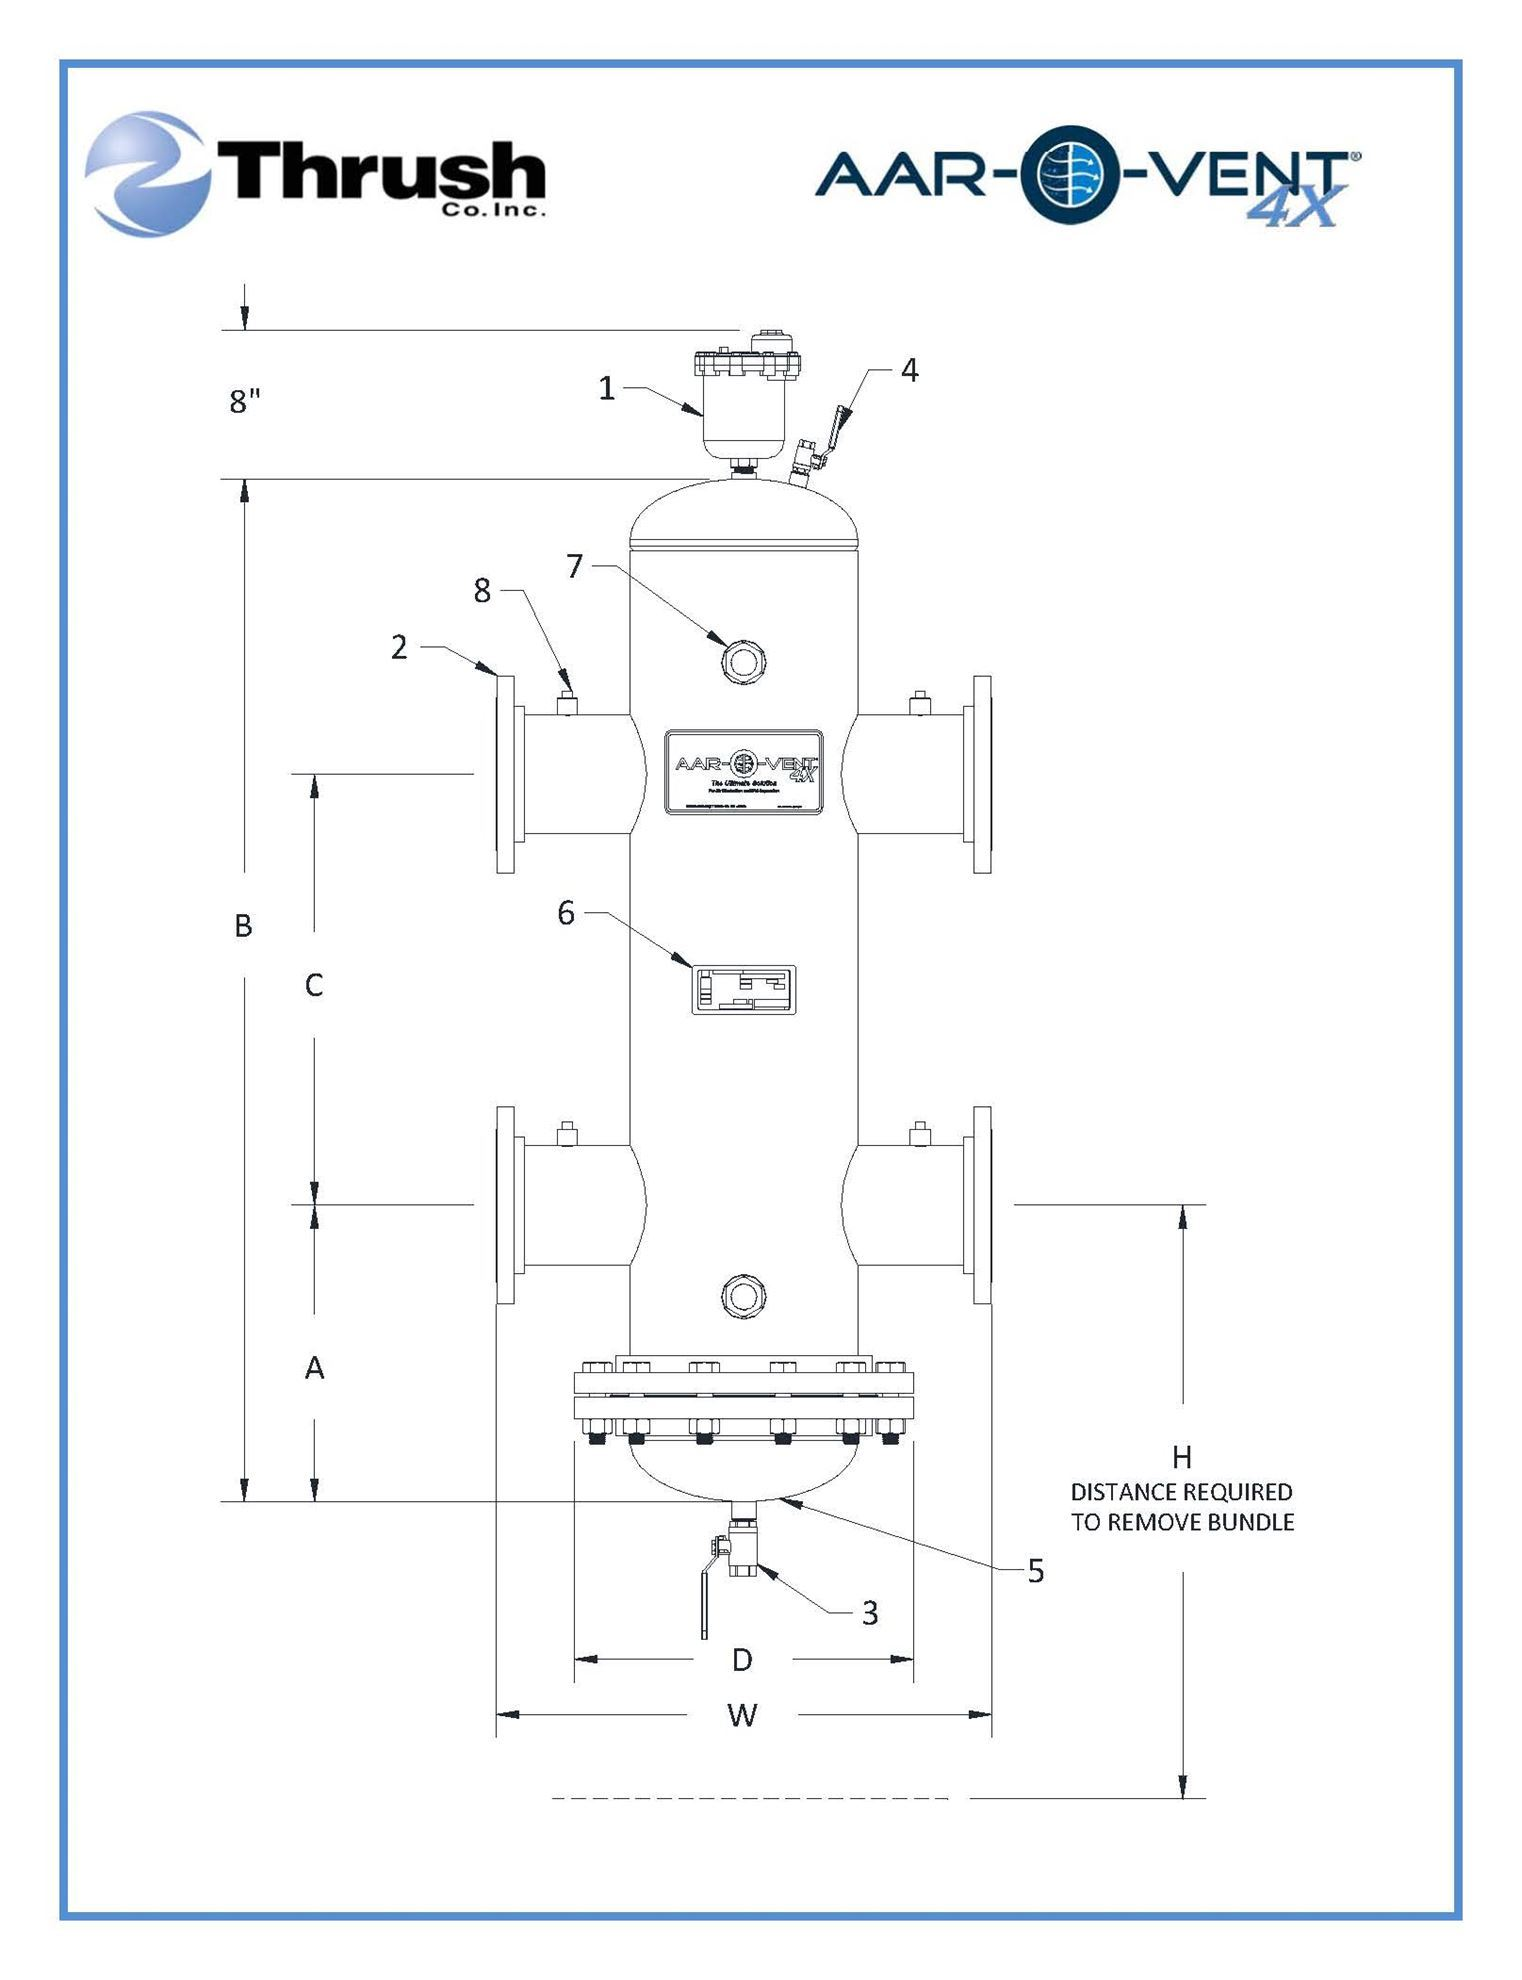 """Picture of T4SR-060-X , Aar-O-Vent™ - 6"""" HSR Series Hydraulic Separator, Standard Velocity, Removable Head Cover, Without Options"""